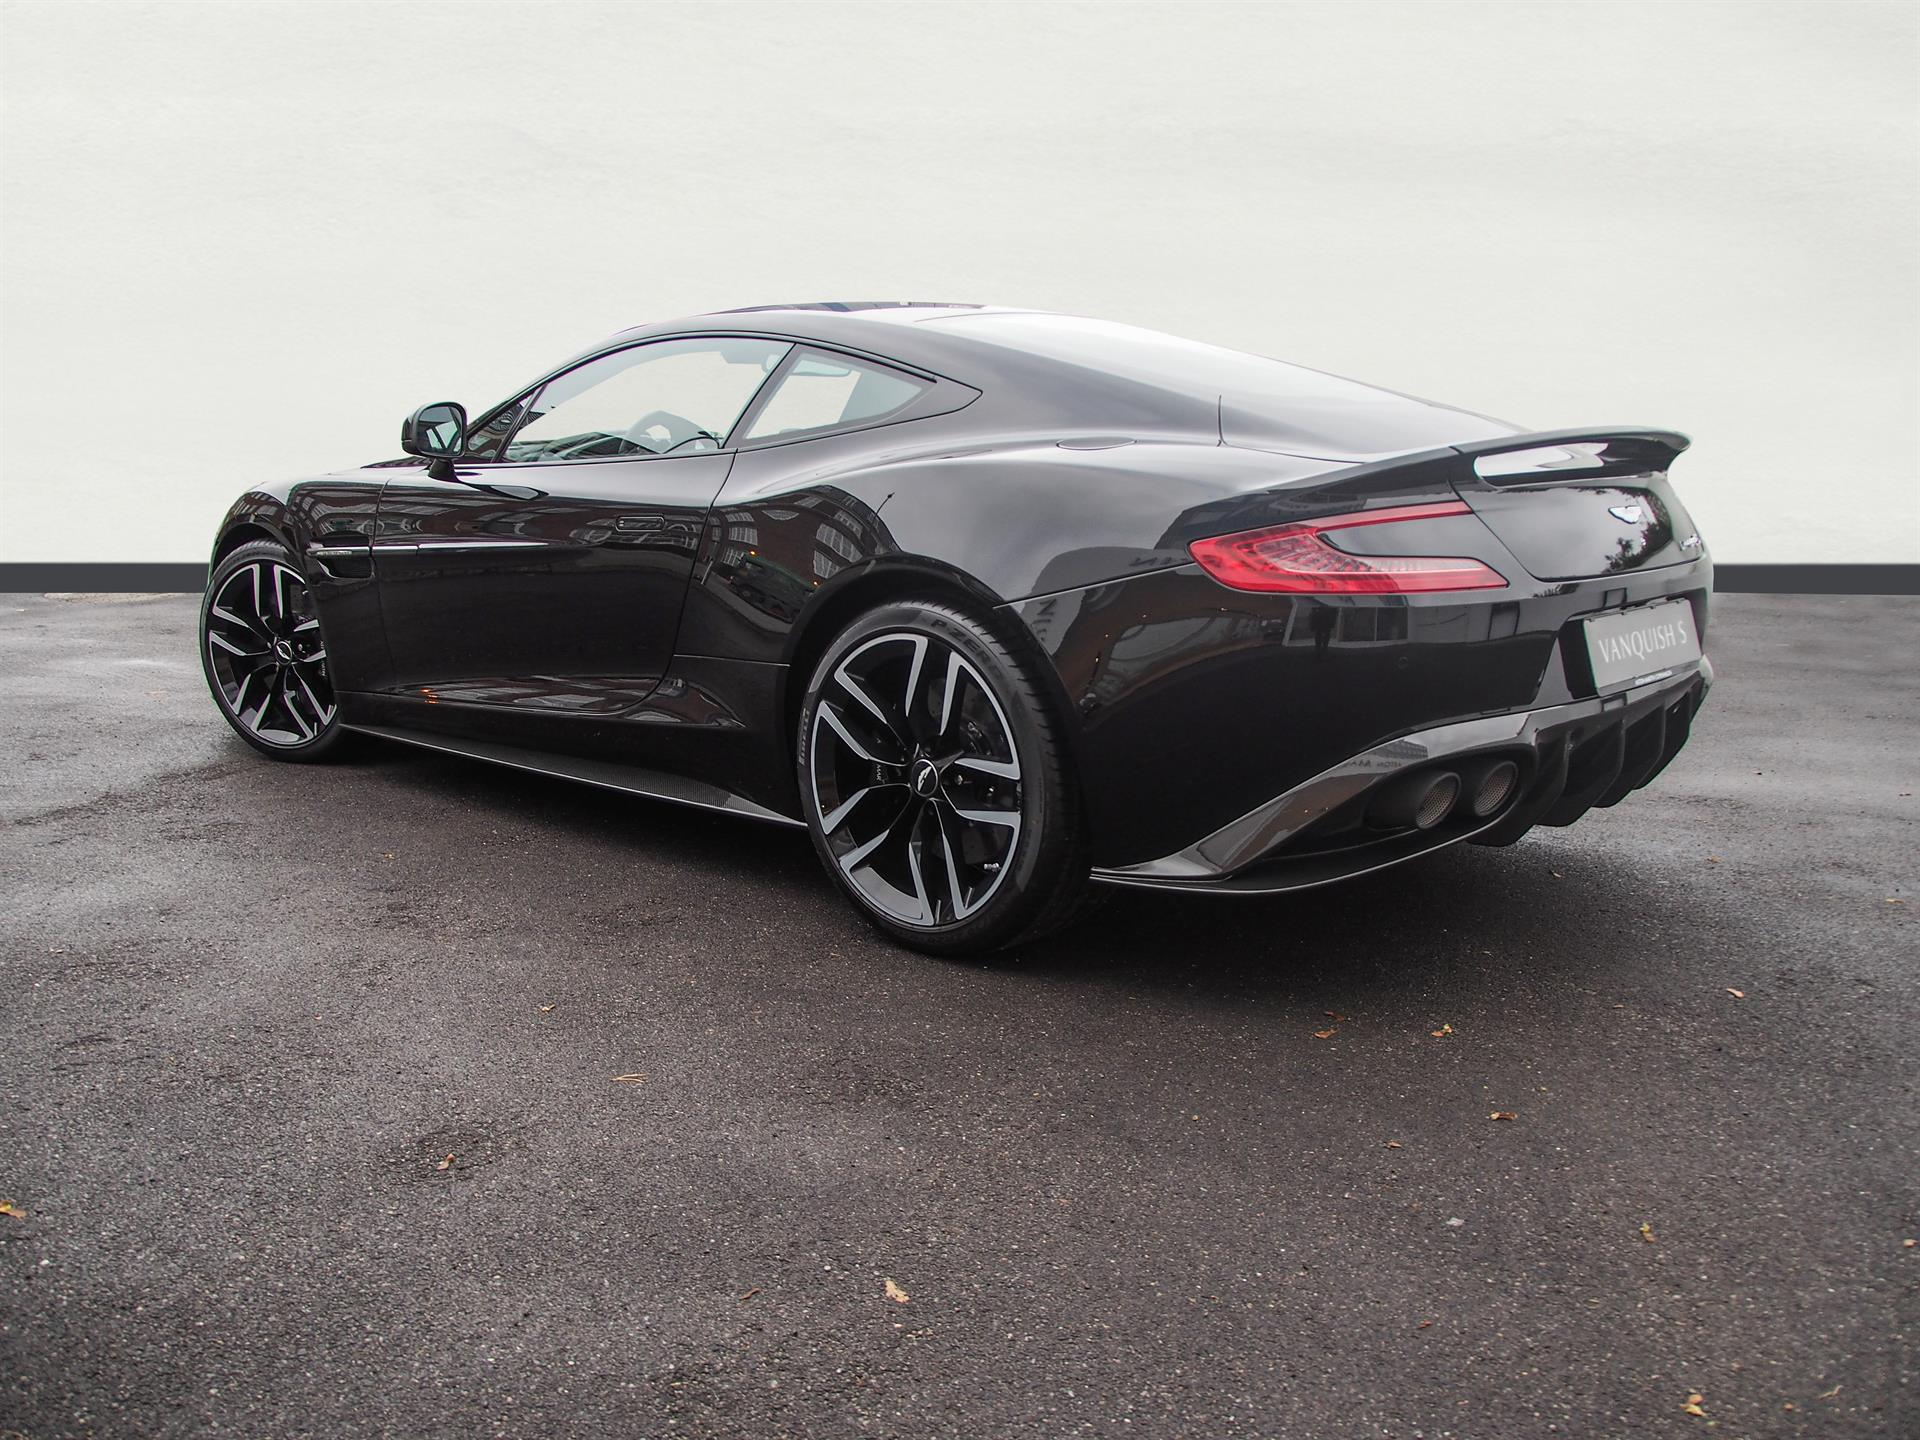 aston martin lagonda pre owned used aston martins car details vanquish s coupe new. Black Bedroom Furniture Sets. Home Design Ideas